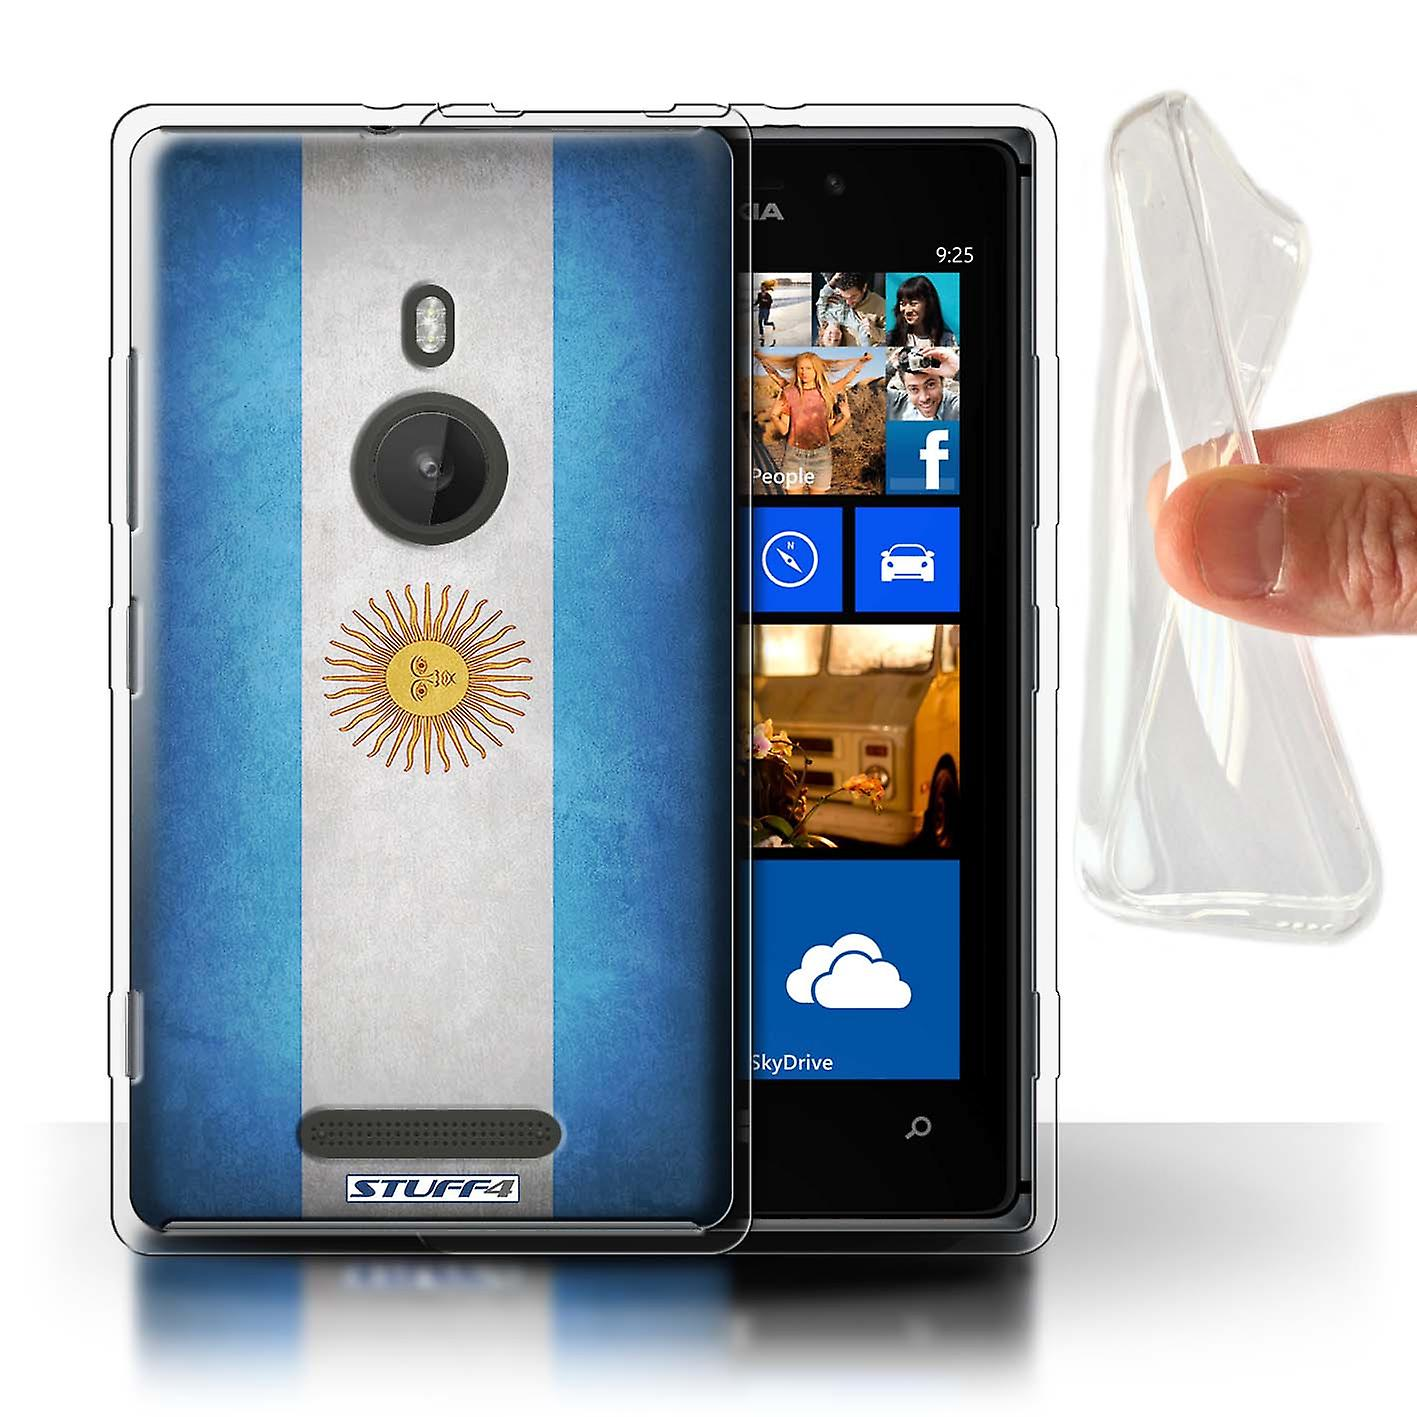 STUFF4 Gel TPU Case/Cover for Nokia Lumia 925/Argentina/Argentinean/Flags